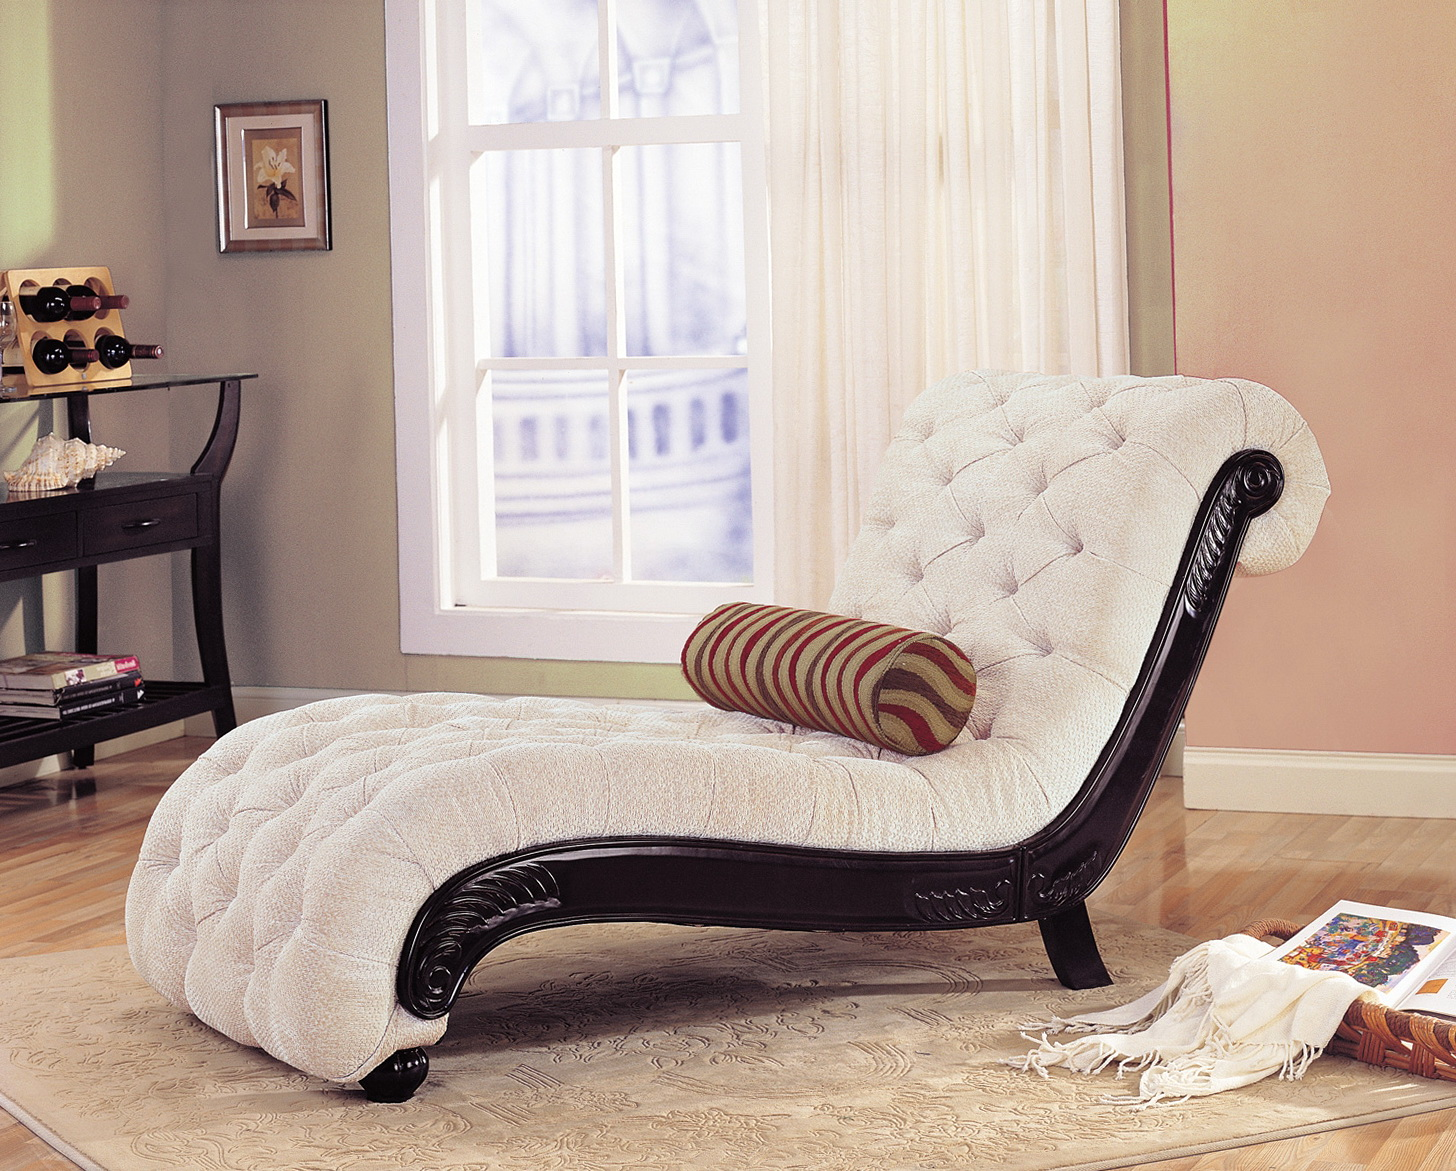 Chaise Lounge Chairs For Bedroom Home Design Ideas